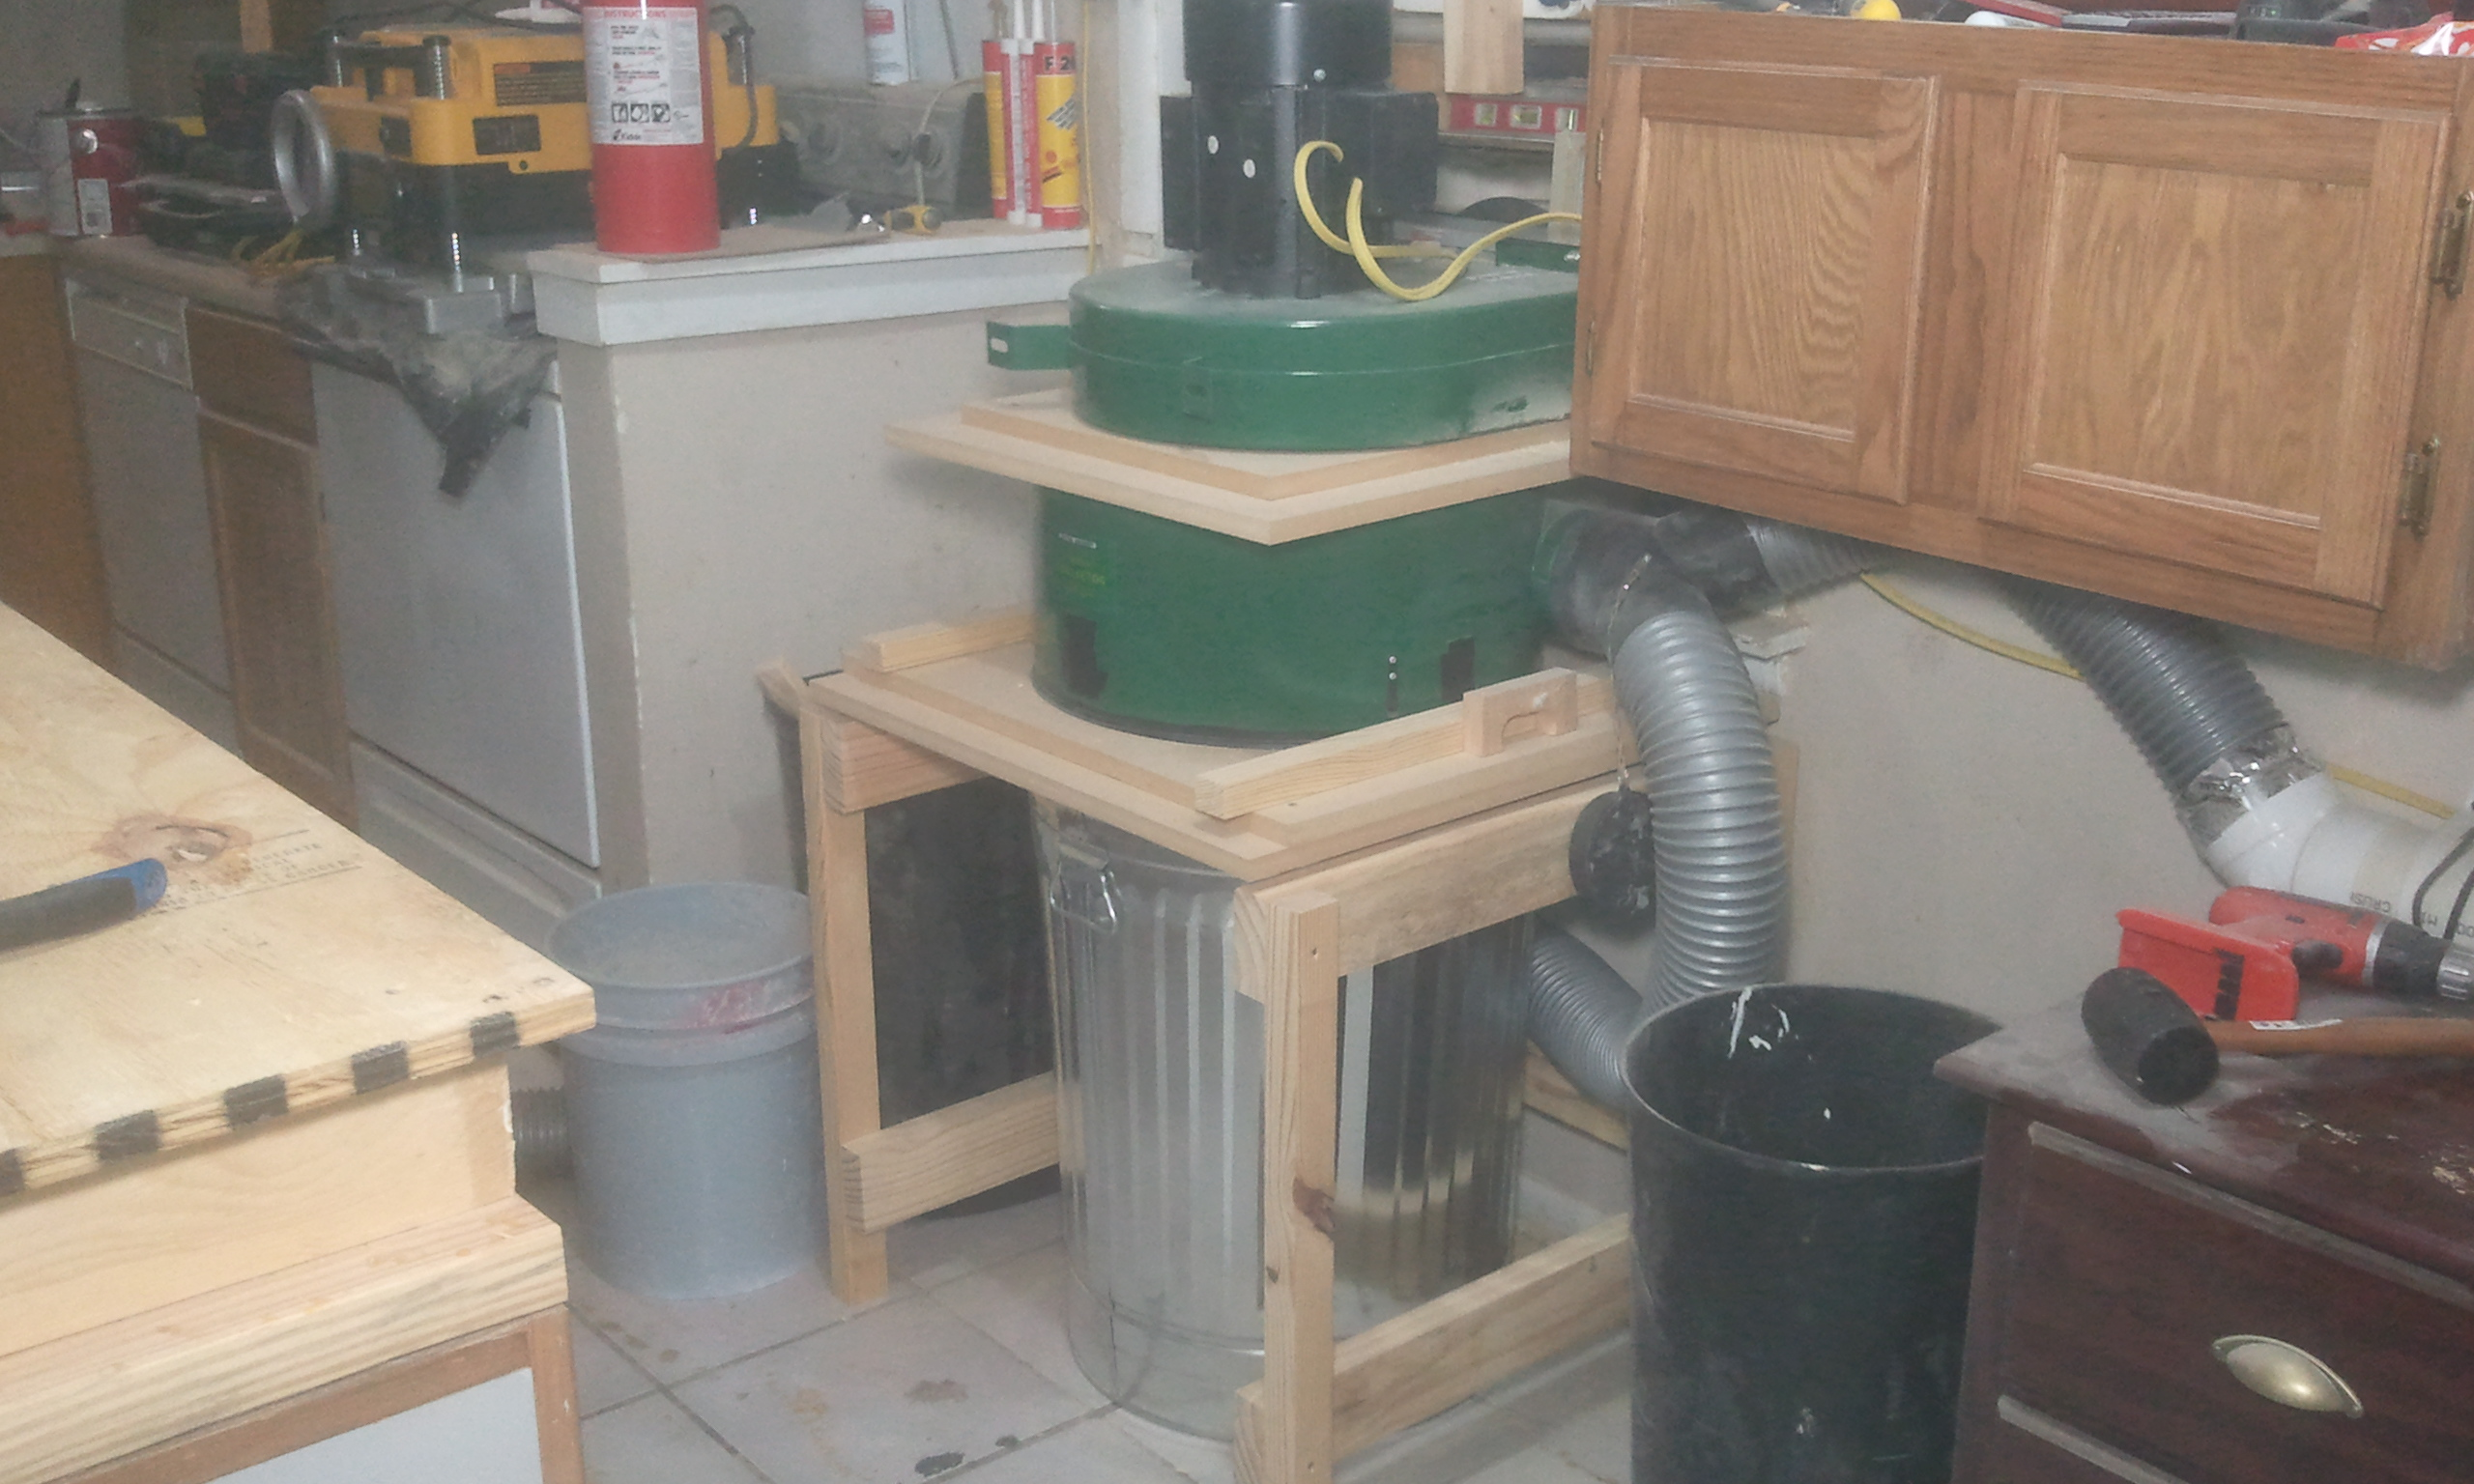 harbor freight dust collector